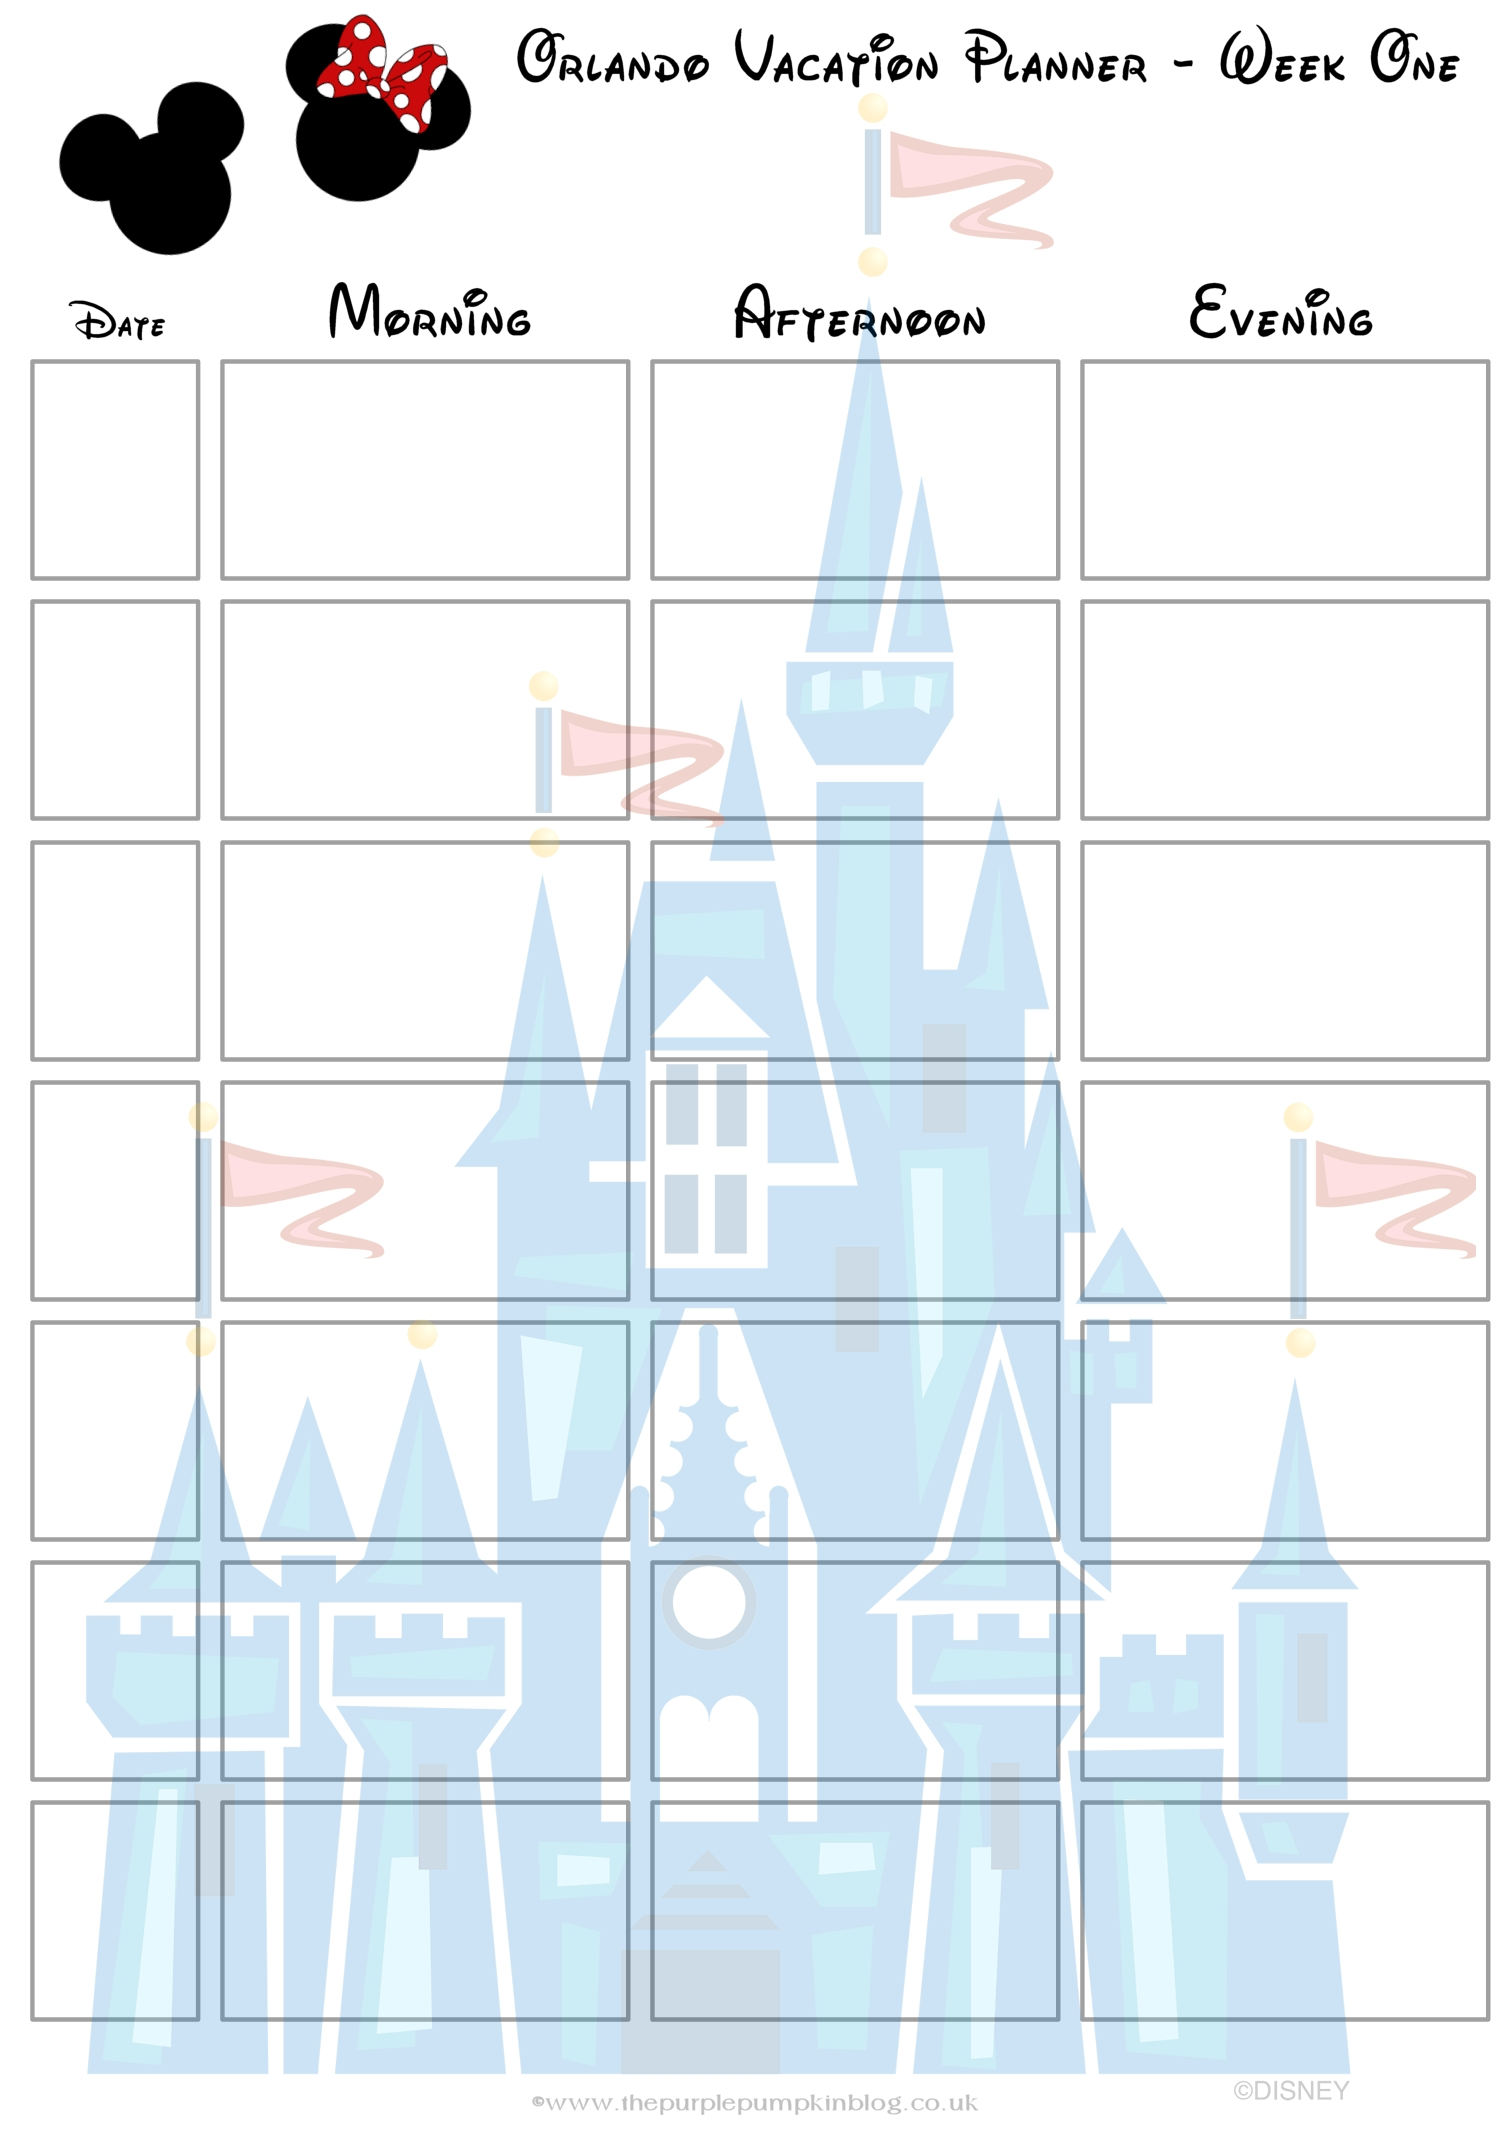 Orlando, Walt Disney World Vacation Planner | Disney | Pinterest  Disney World Itinerary Template Blank